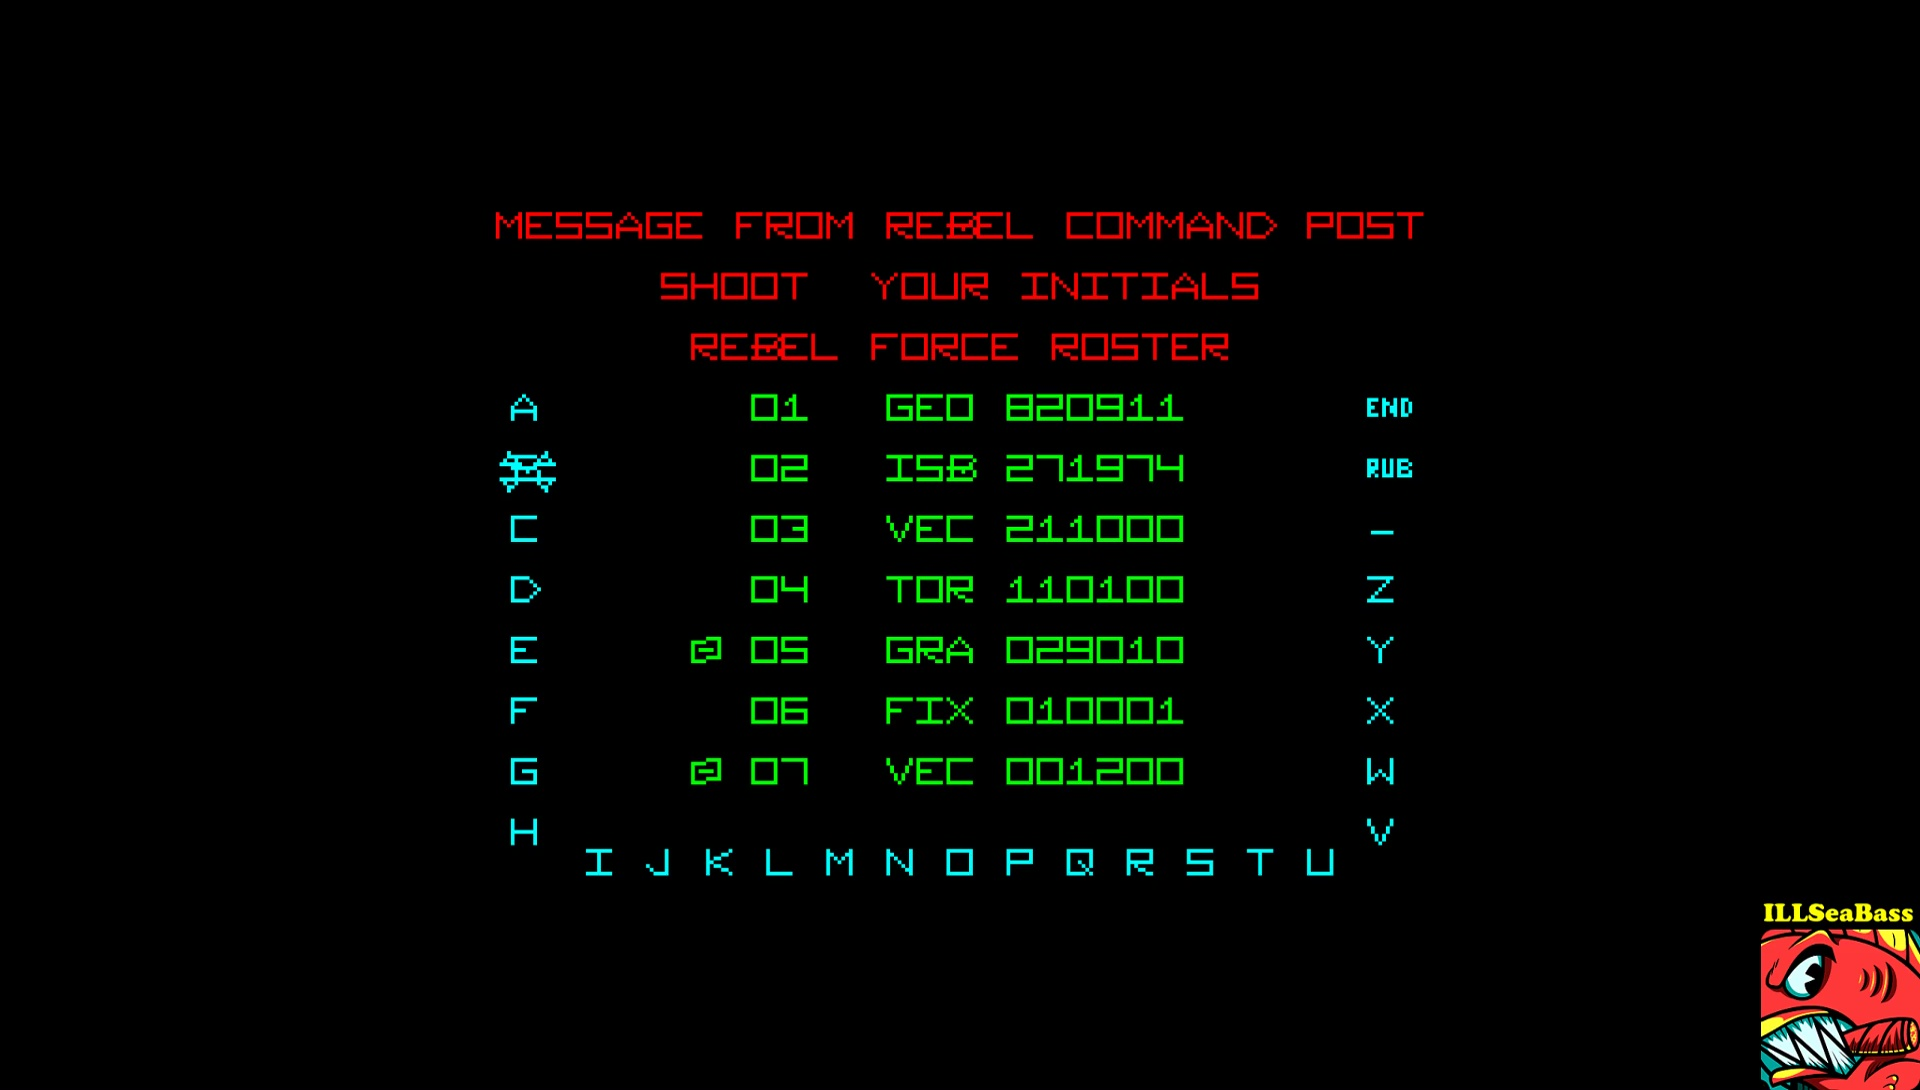 ILLSeaBass: The Empire Strikes Back [Wave 3 - Hard] (Amstrad CPC Emulated) 271,974 points on 2017-02-24 08:51:43